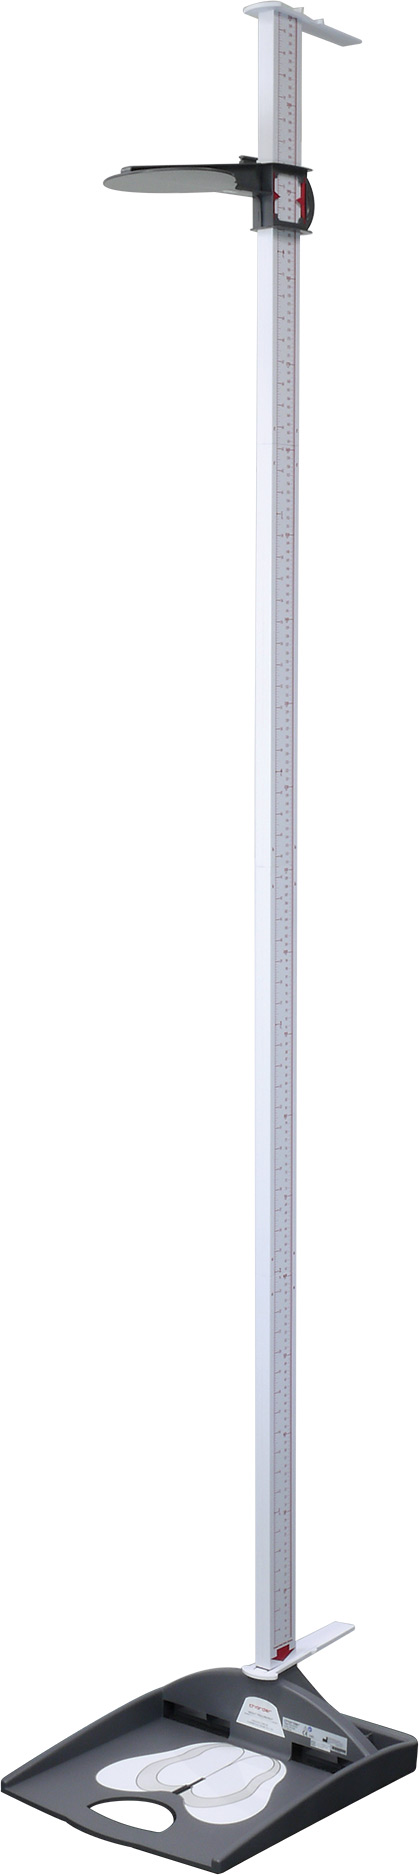 Portable Height Measuring Rod